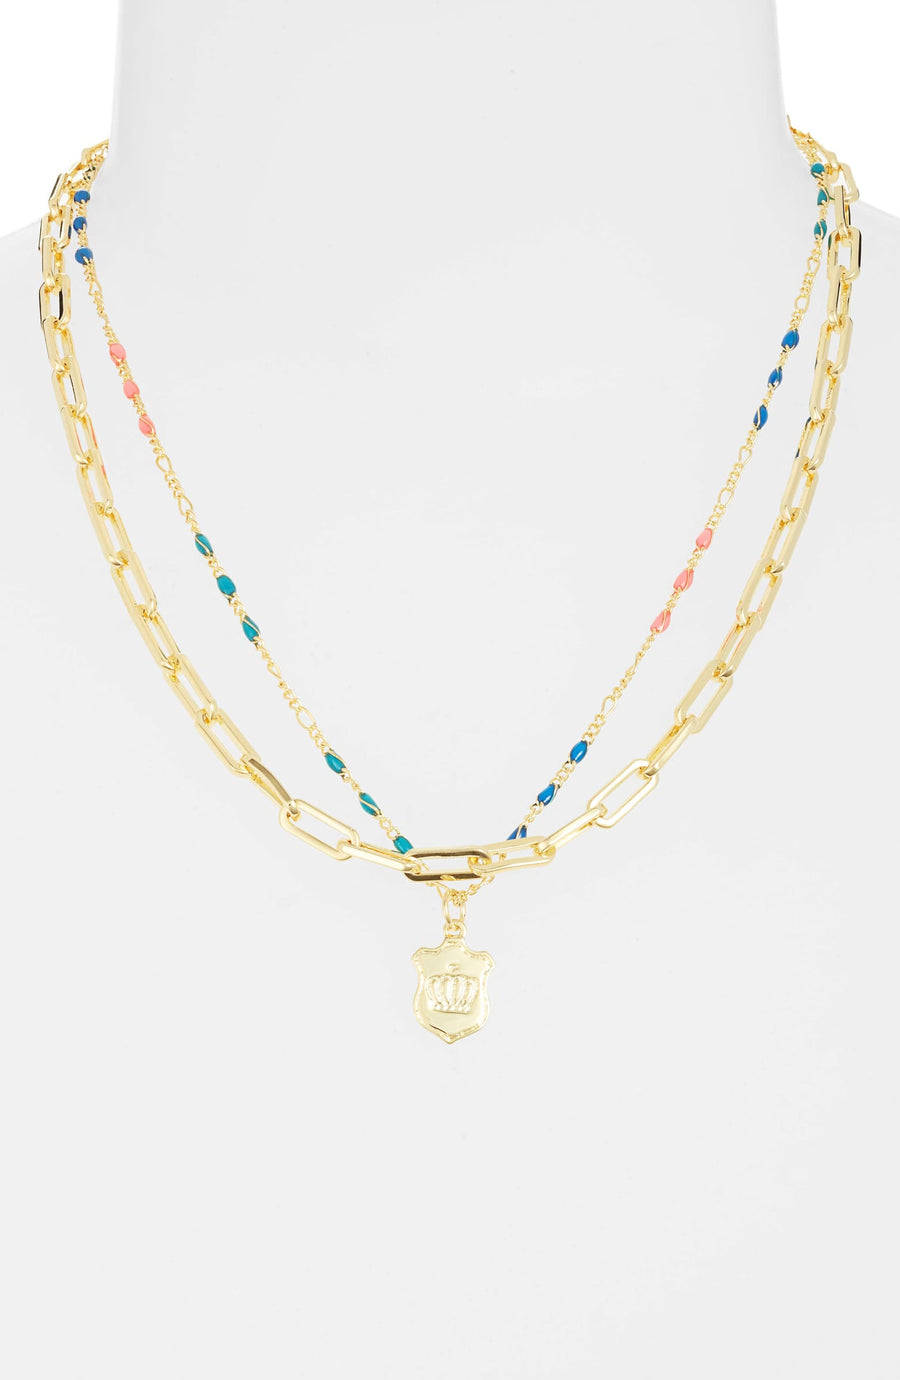 ROYAL TENENBAUM NECKLACE